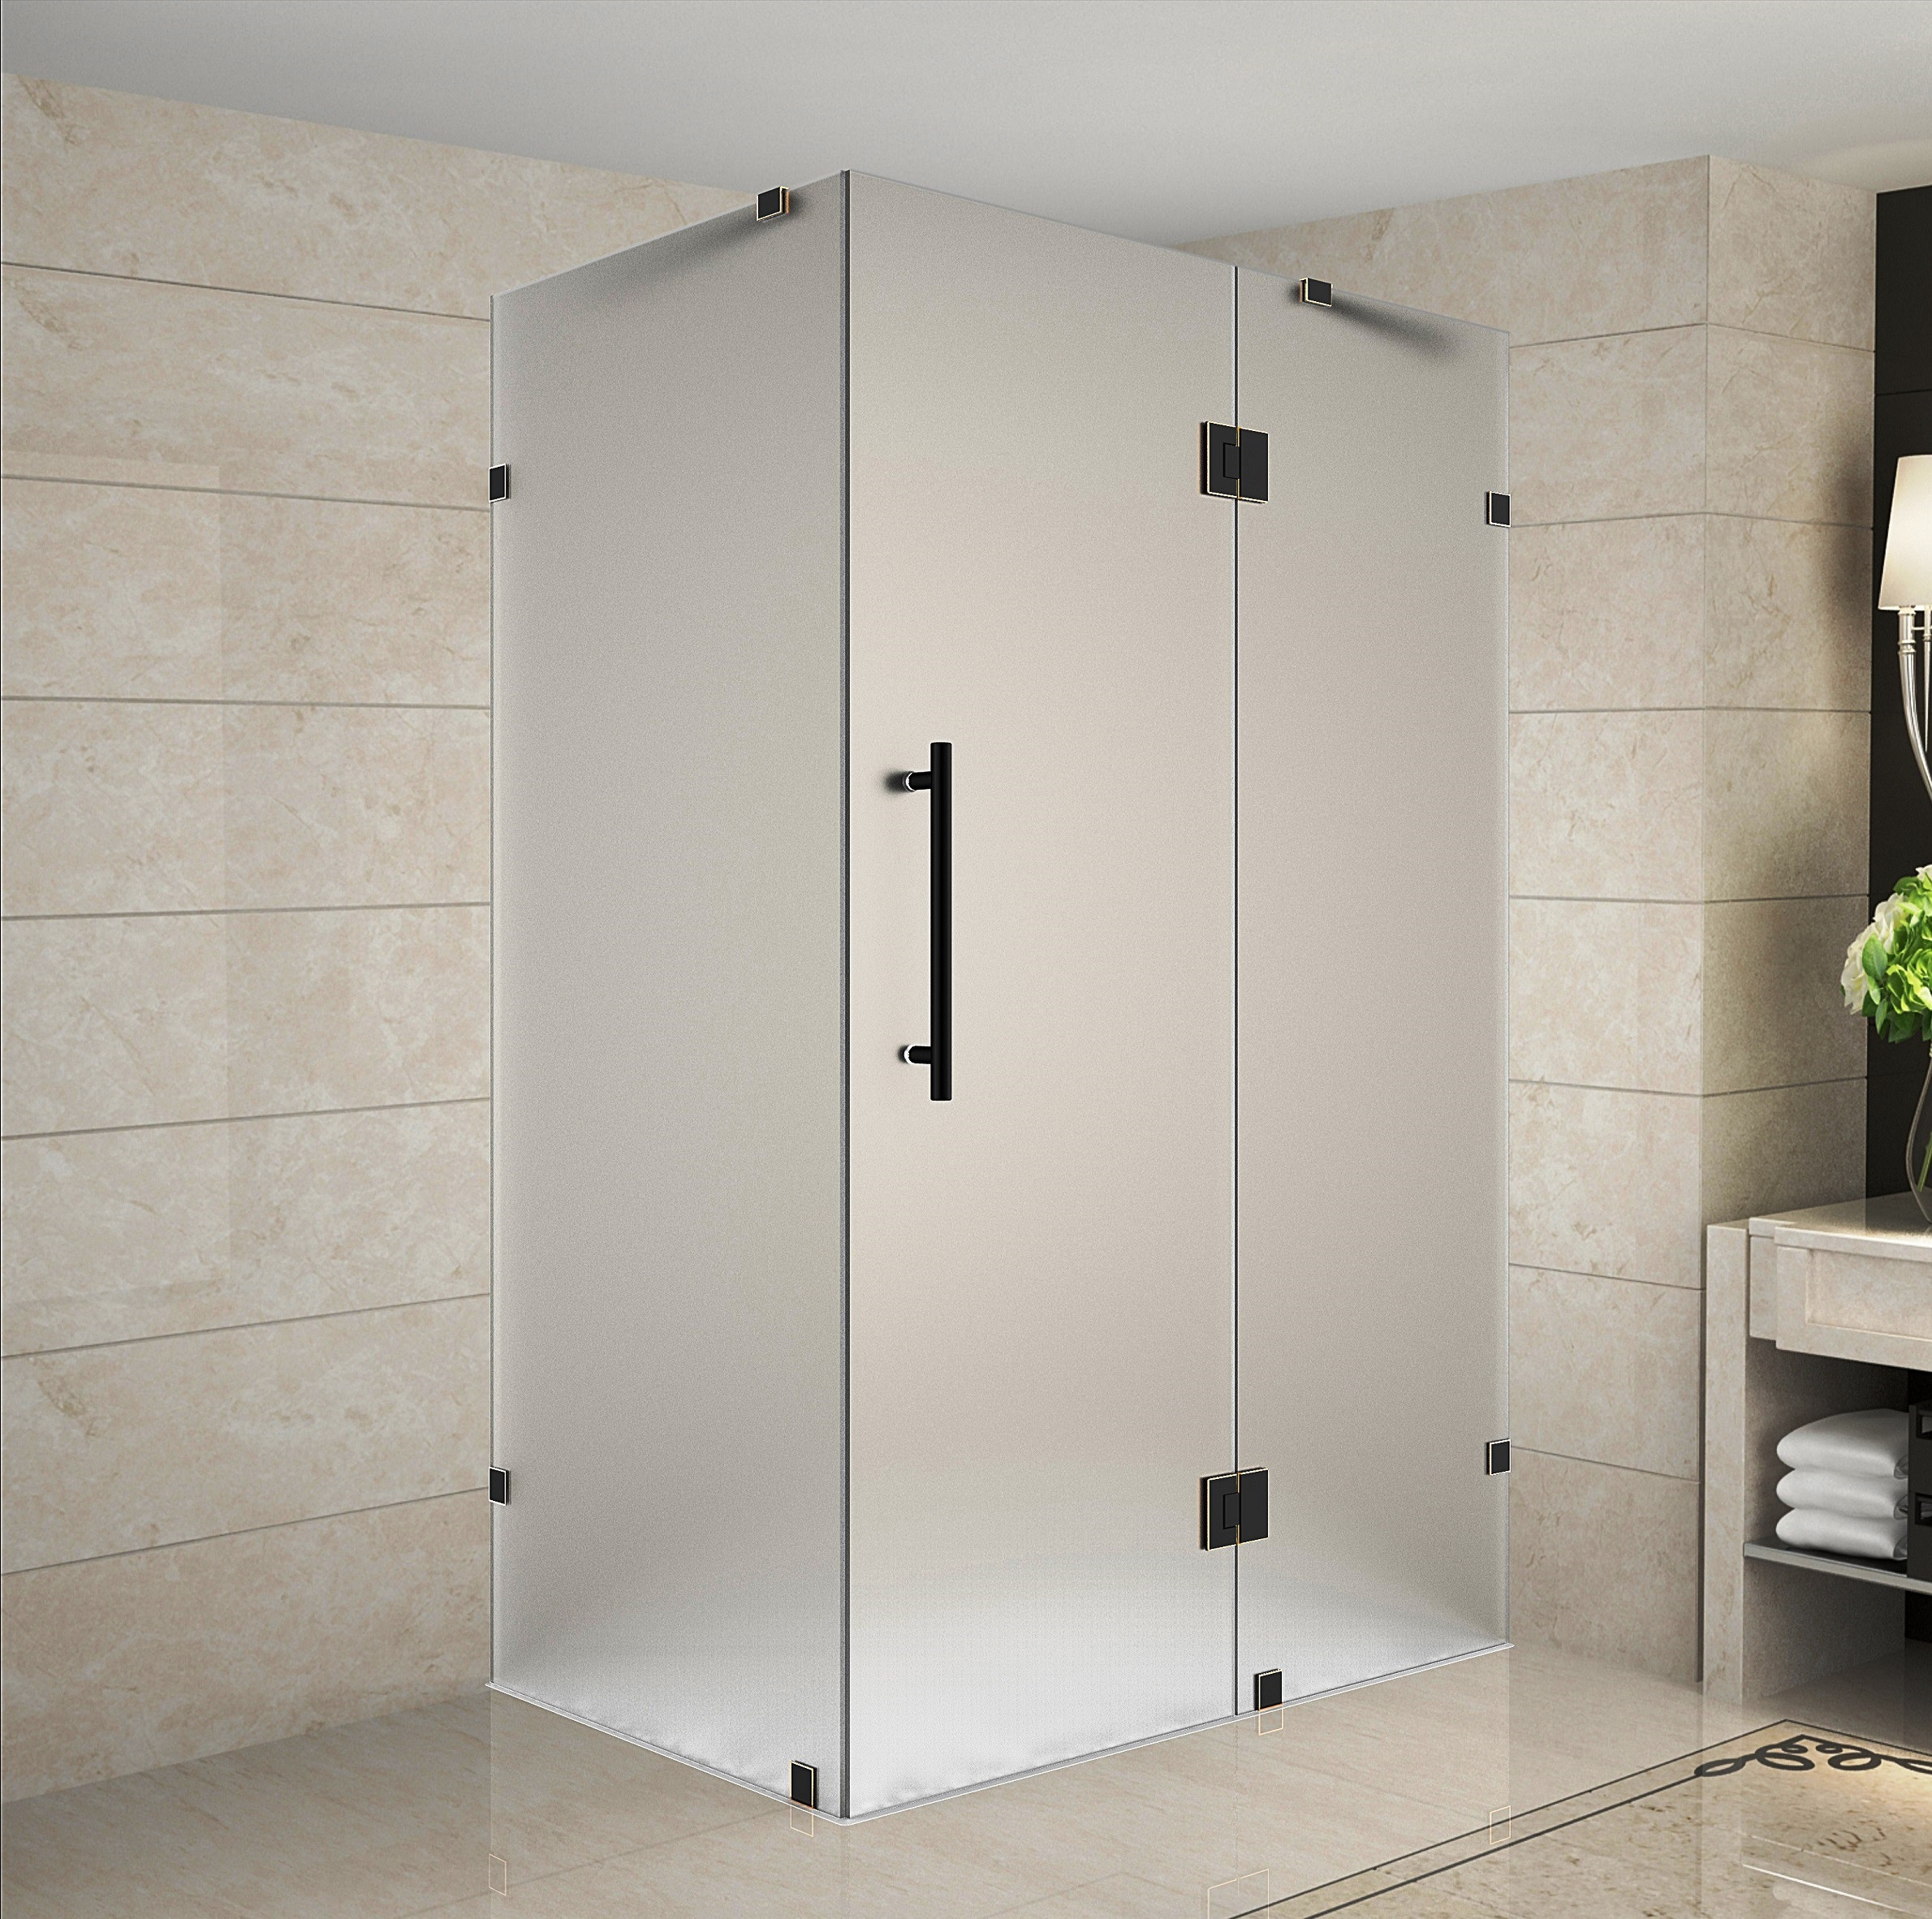 Aston Global SEN987F-CH-3230-10 Avalux Completely Frameless Frosted Glass Shower Enclosure in Chrome